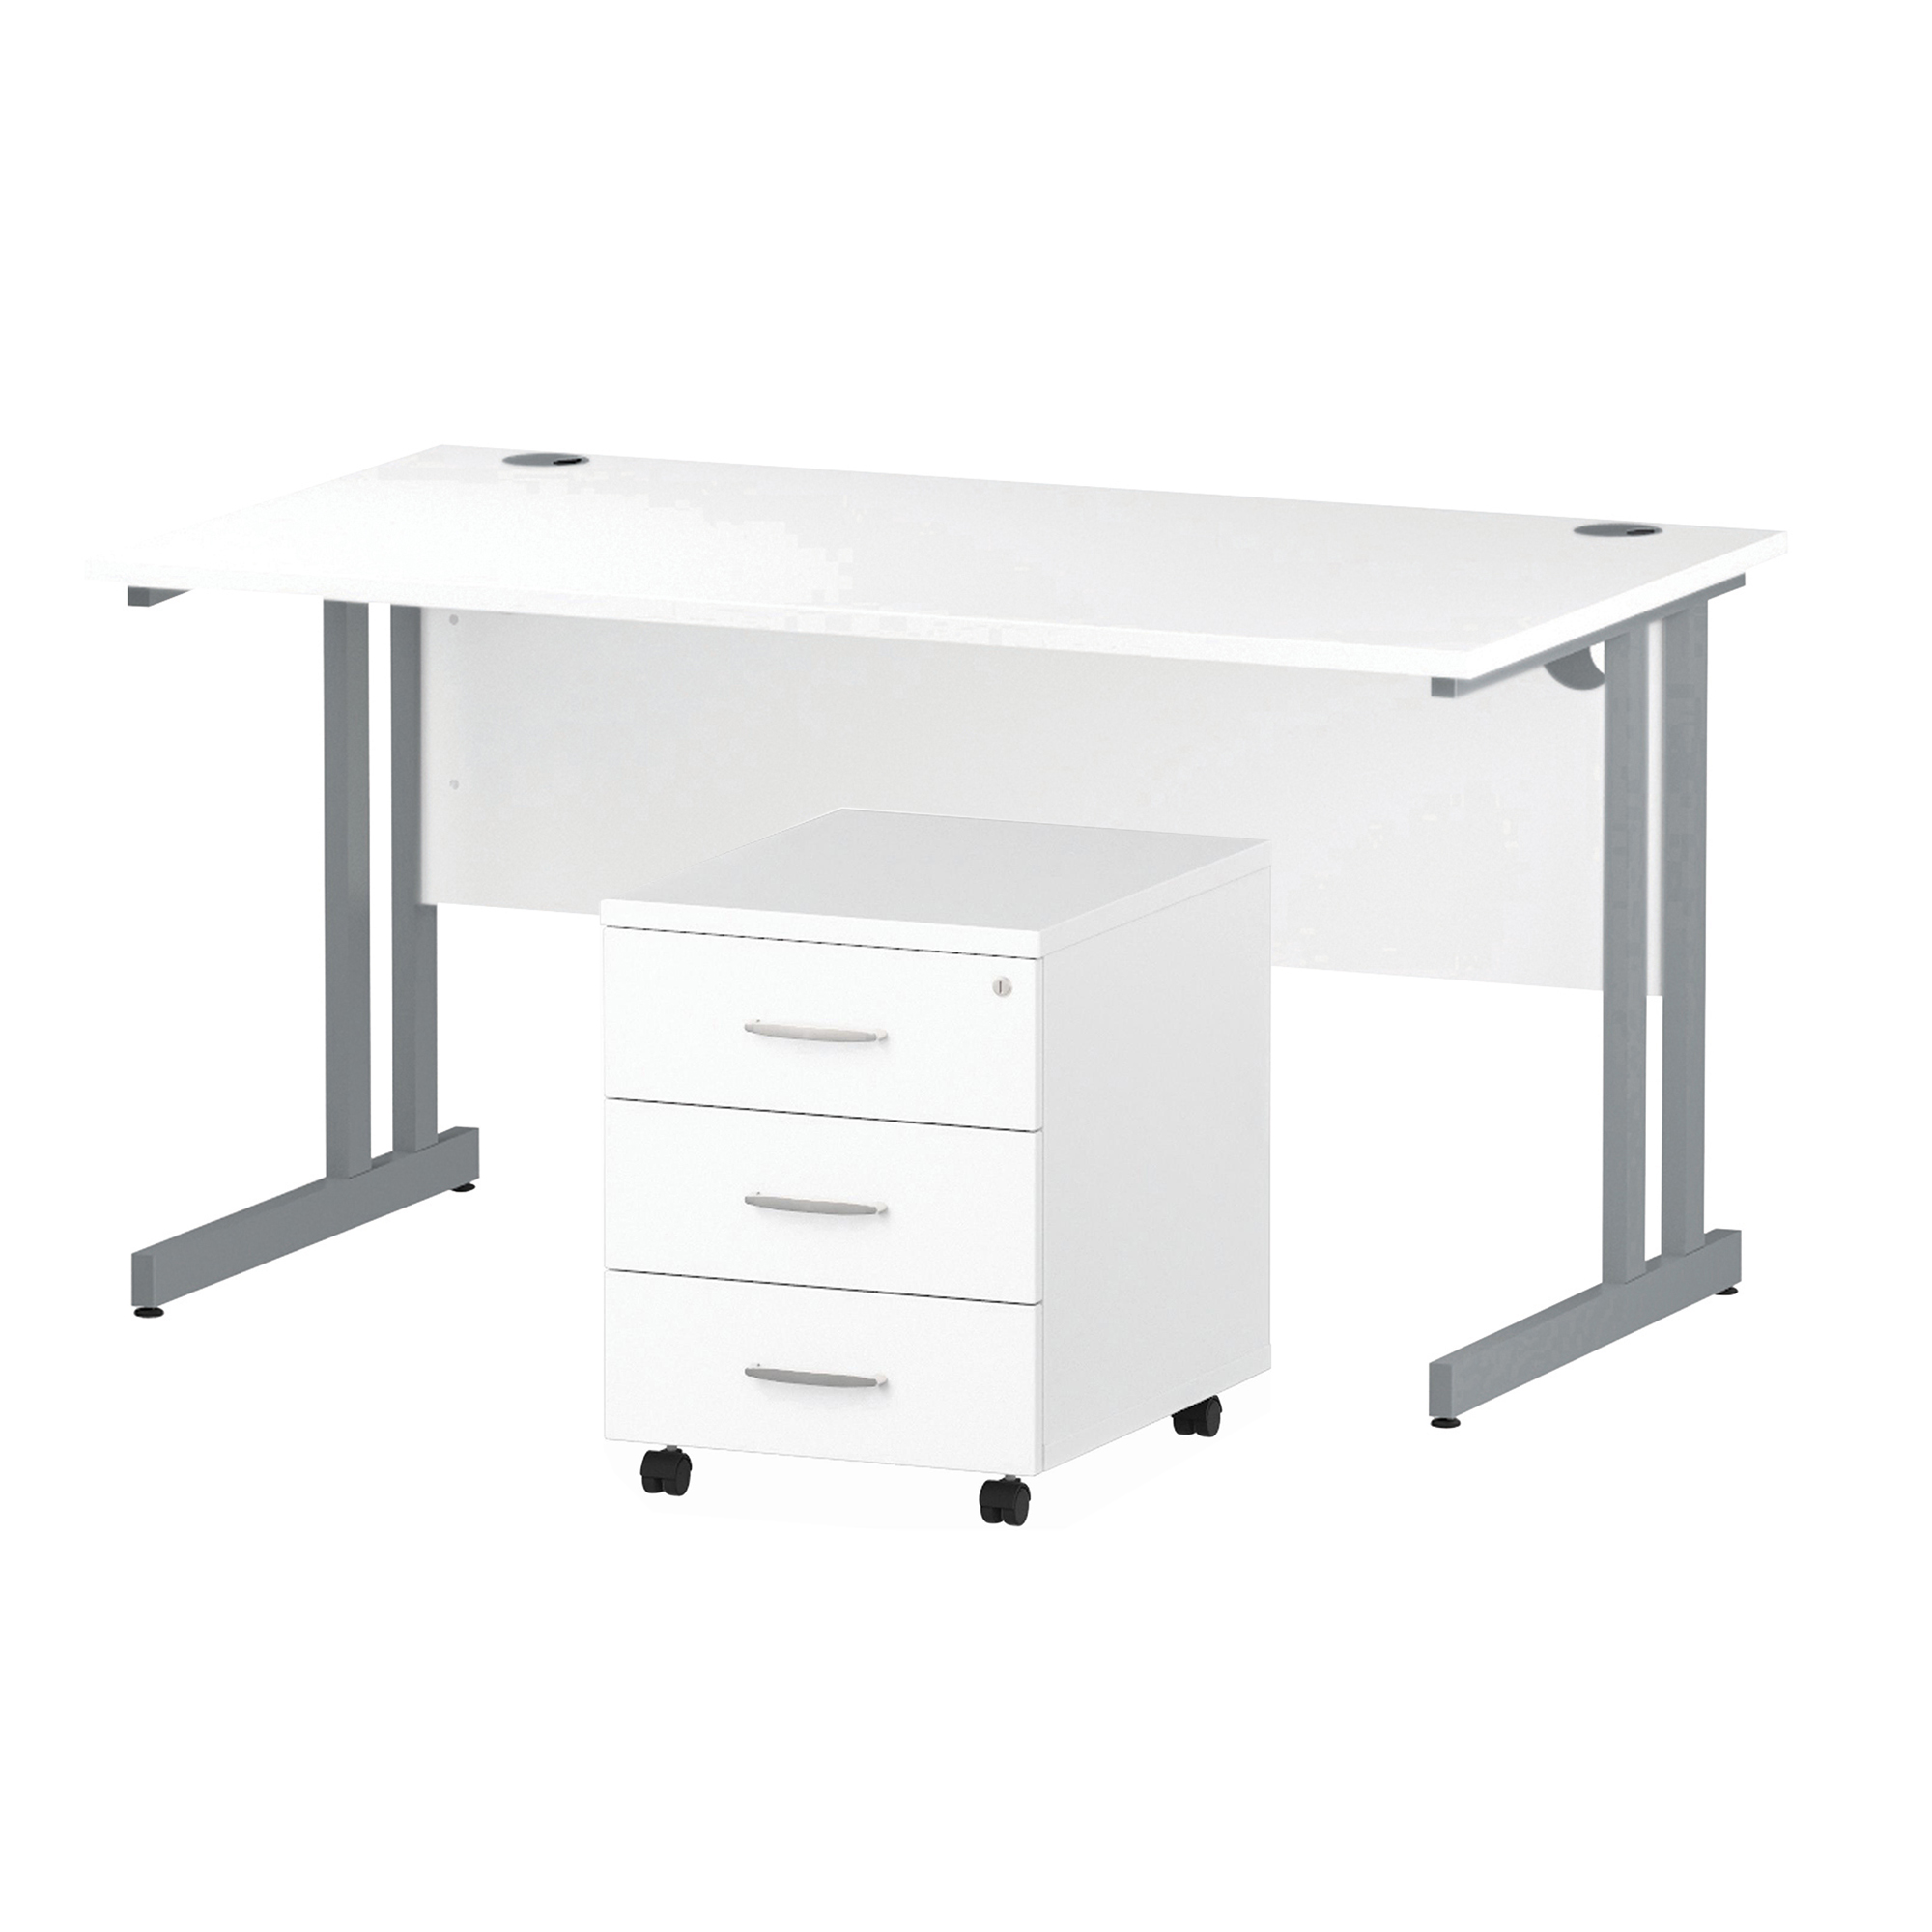 Desks Trexus Cantilever Desk 1400x800 & 3 Drawer Pedestal White Bundle Offer Feb-Apr 2020